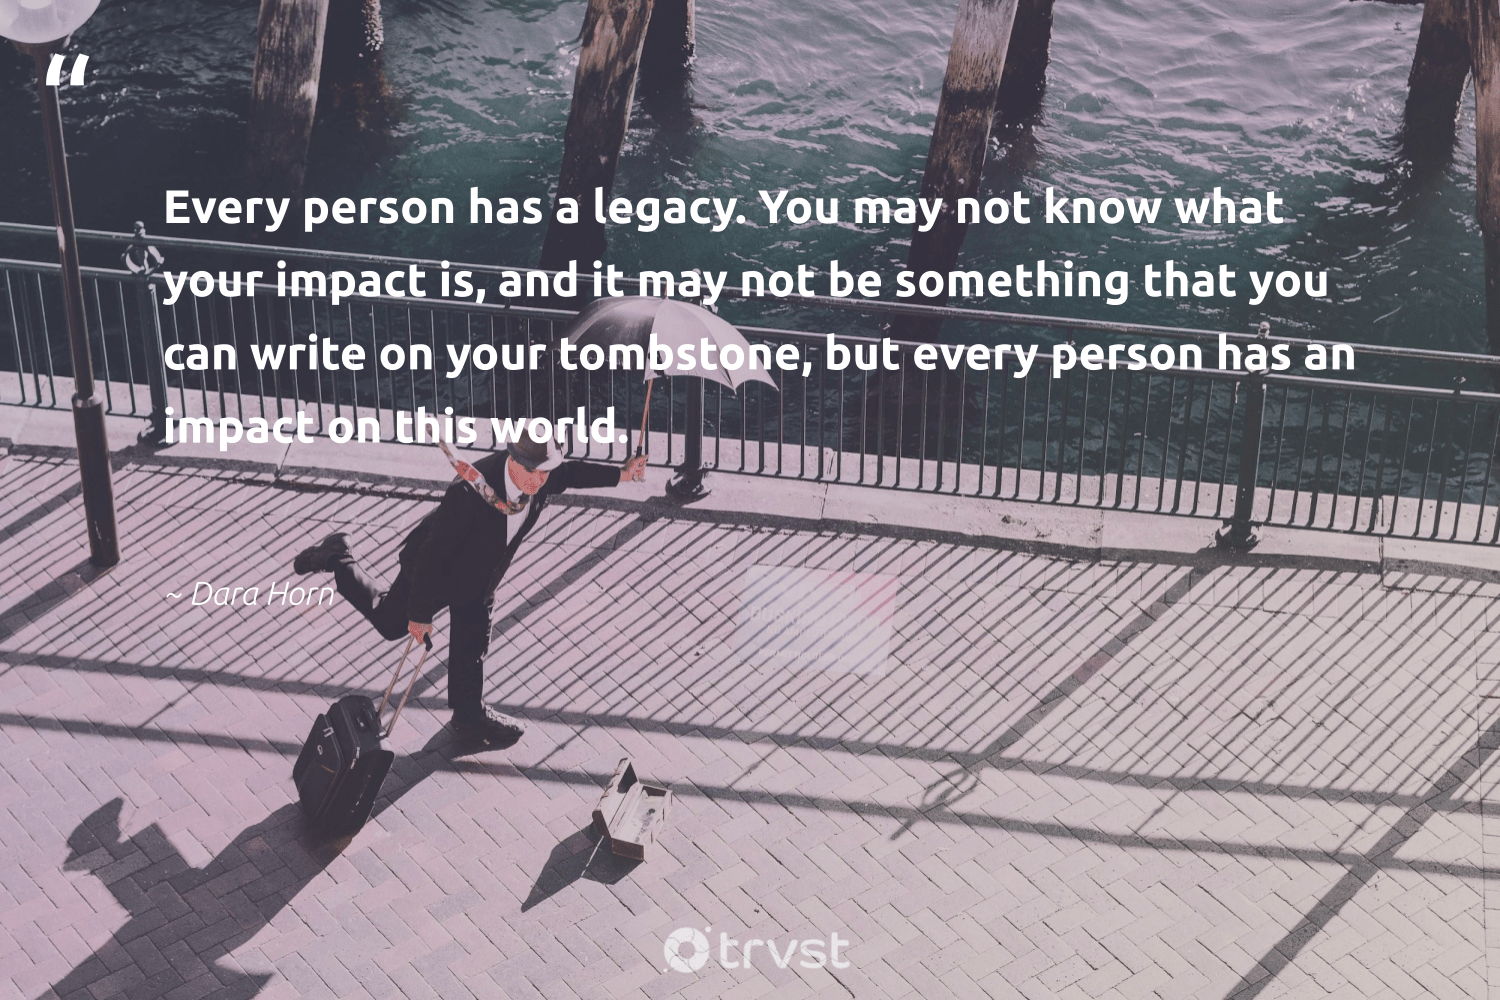 """Every person has a legacy. You may not know what your impact is, and it may not be something that you can write on your tombstone, but every person has an impact on this world.""  - Dara Horn #trvst #quotes #impact #legacy #socialchange #dogood #giveback #dosomething #makeadifference #planetearthfirst #ethicalbusiness #thinkgreen"